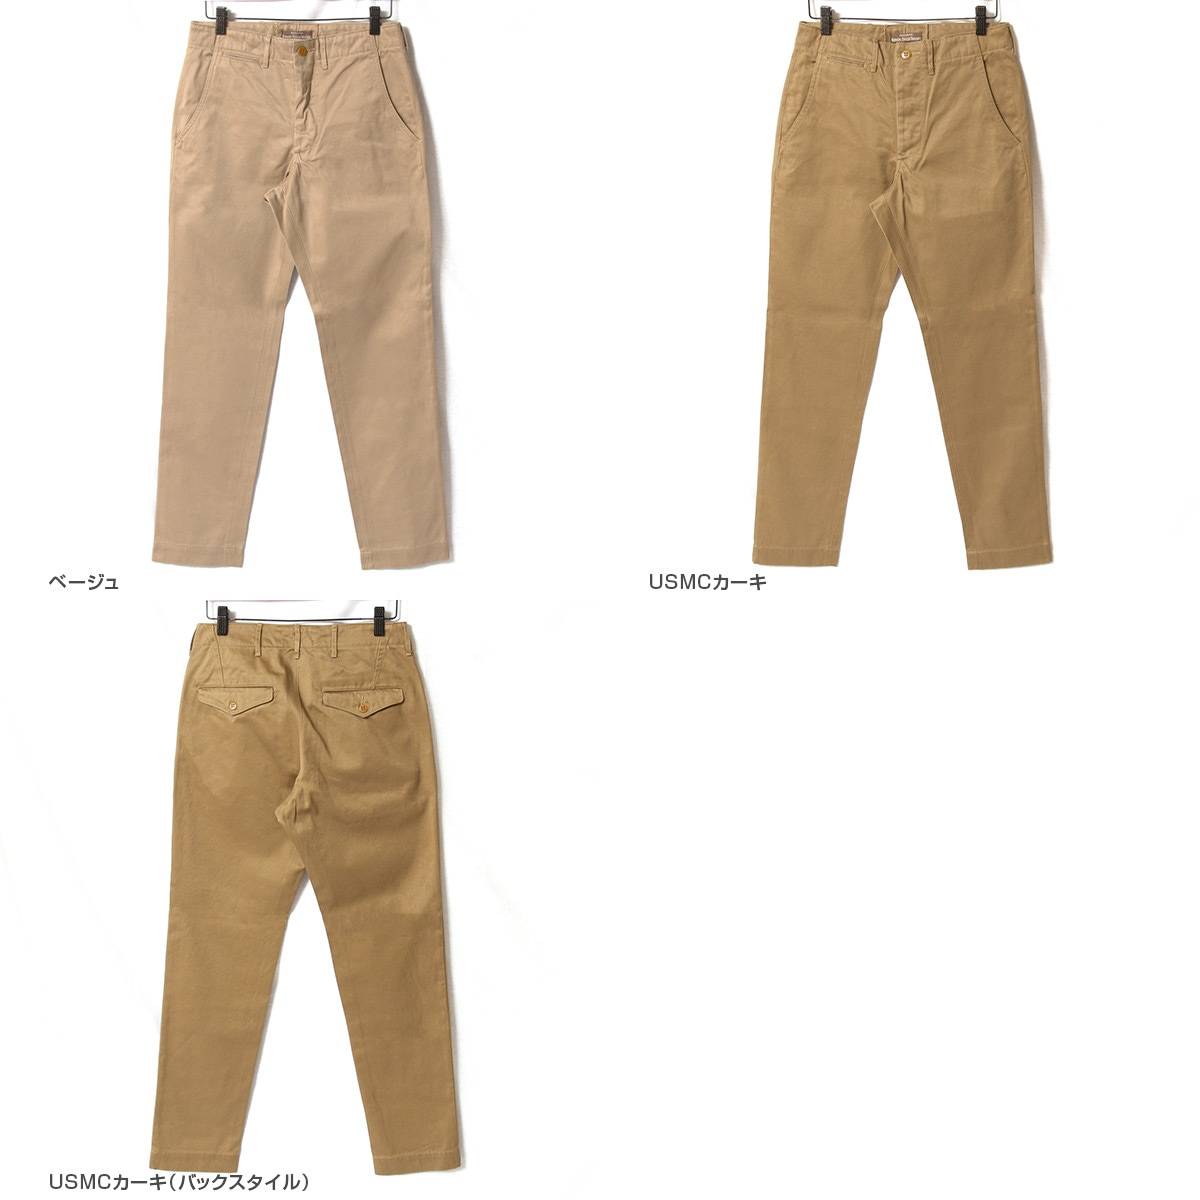 WORKERS ワーカーズ Officer Trousers,Class1 オフィサートラウザー スリムフィット